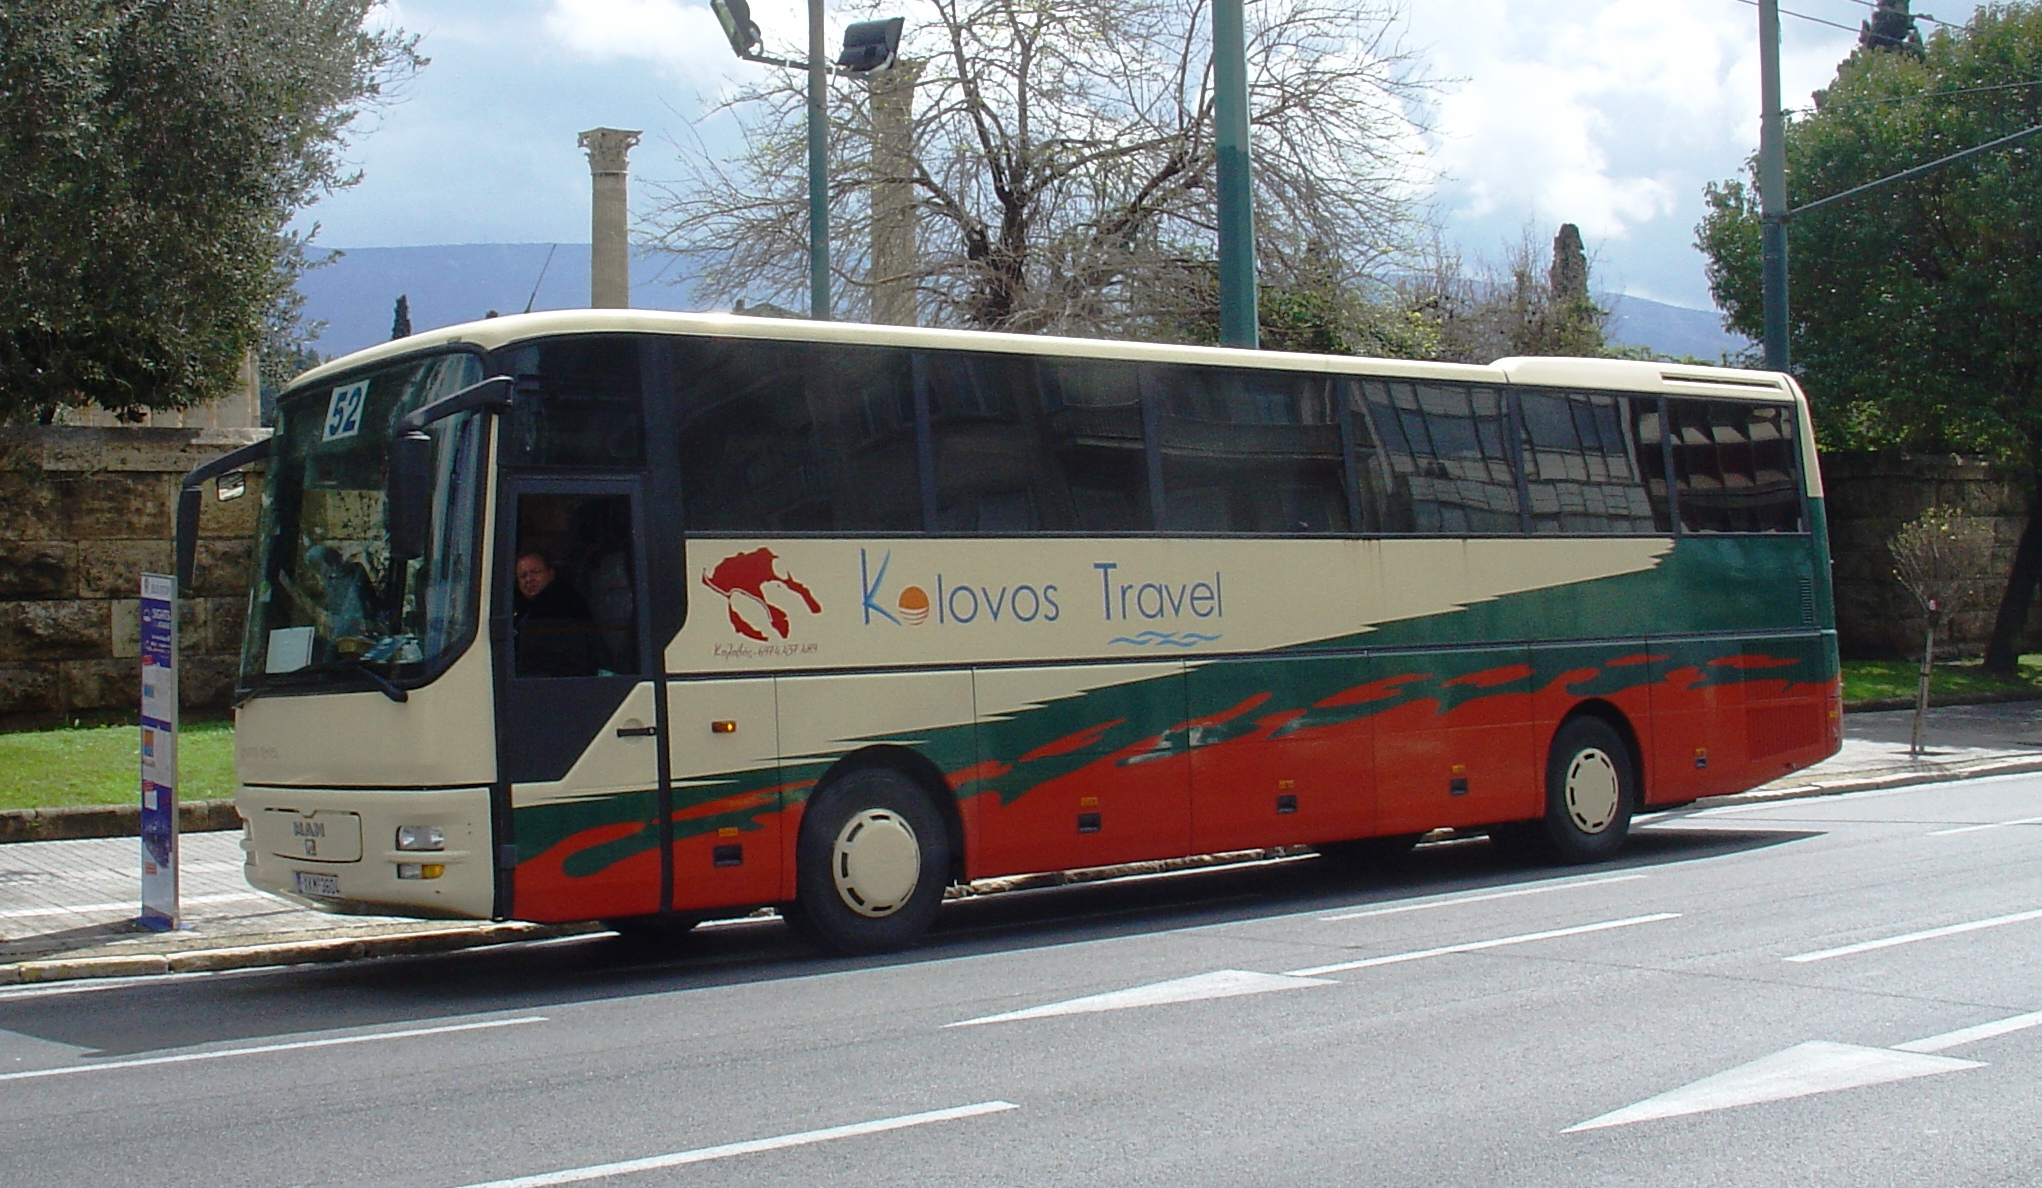 Bus-Hire-Halkidiki-Travel-Agency-Kolovos-Travel-Neos-Marmaras-004